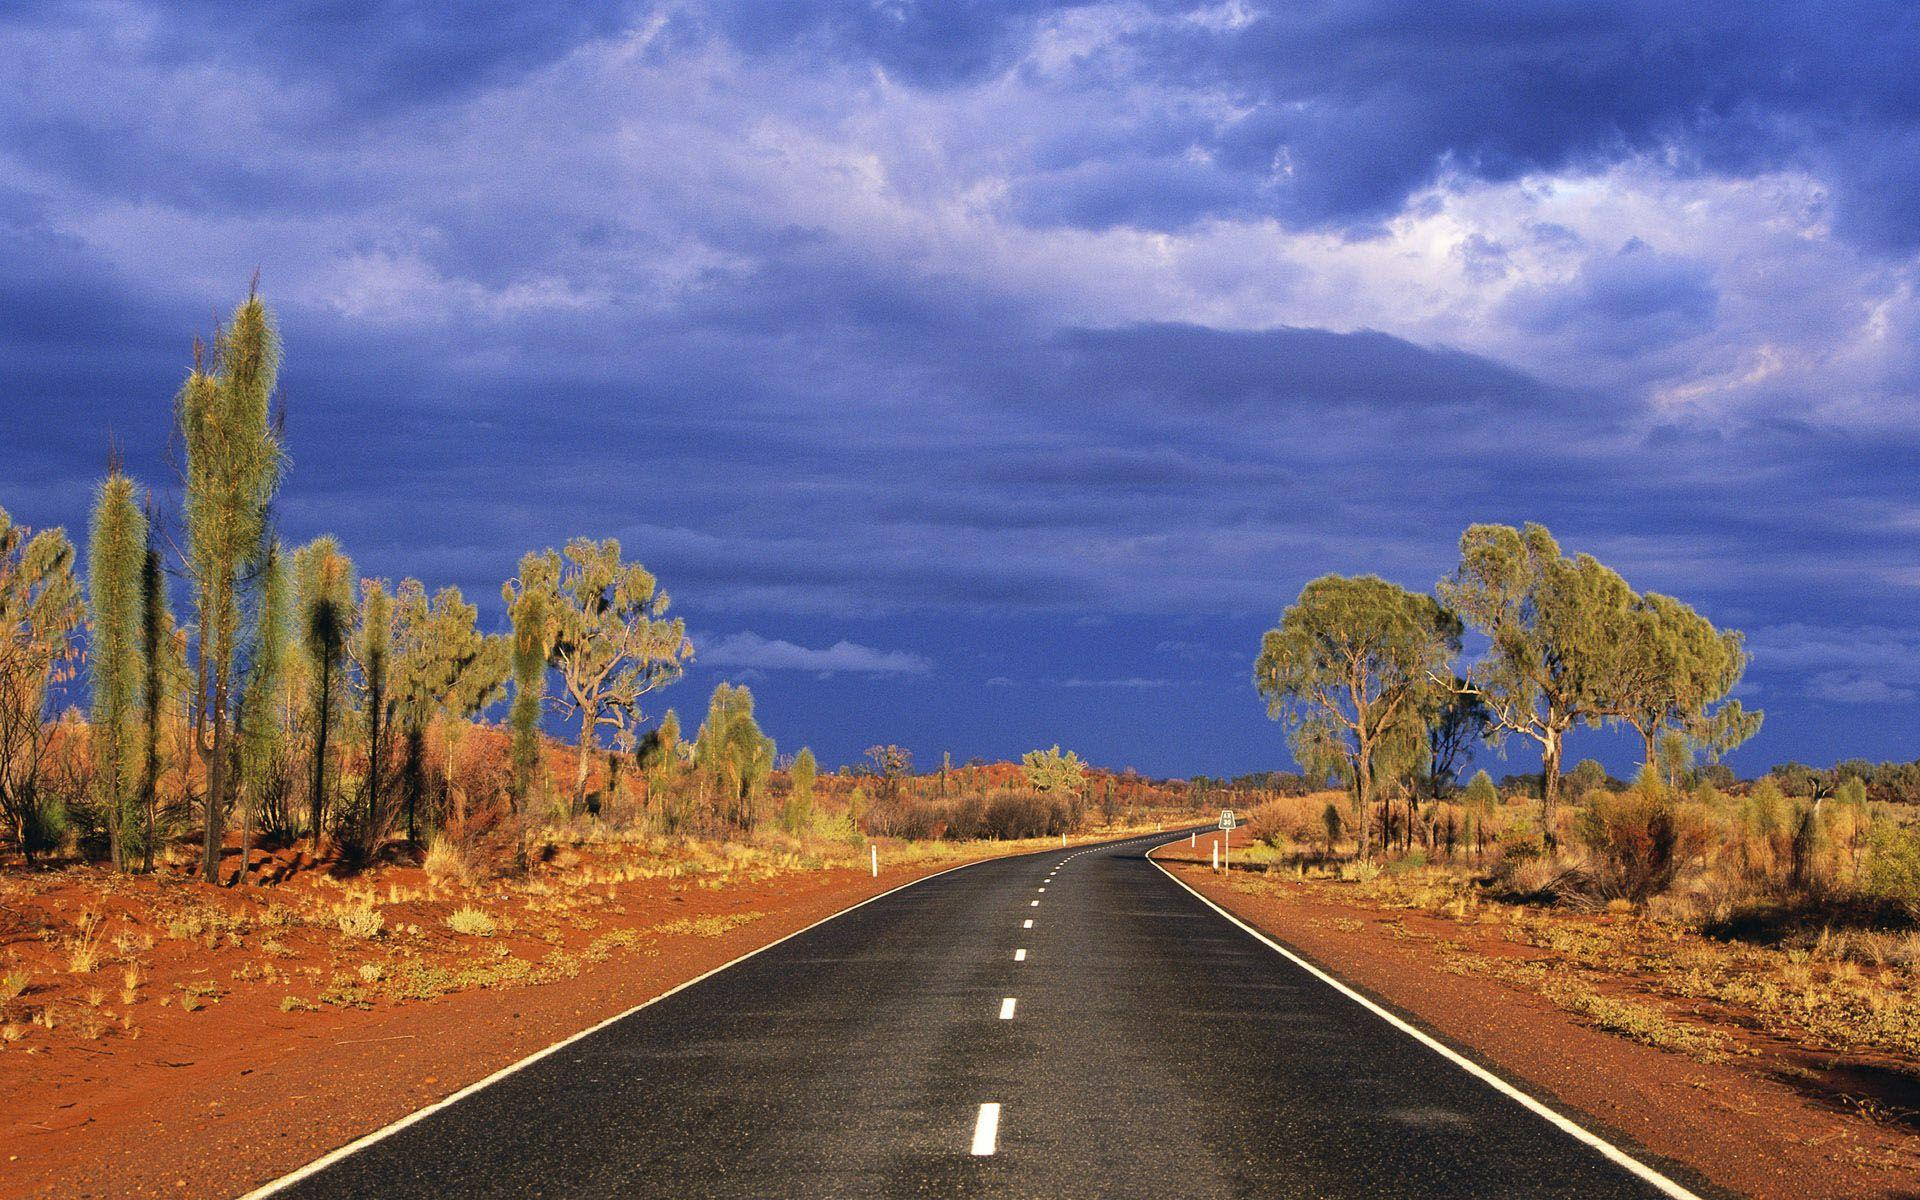 The road through the wilderness wallpapers and images - wallpapers ...